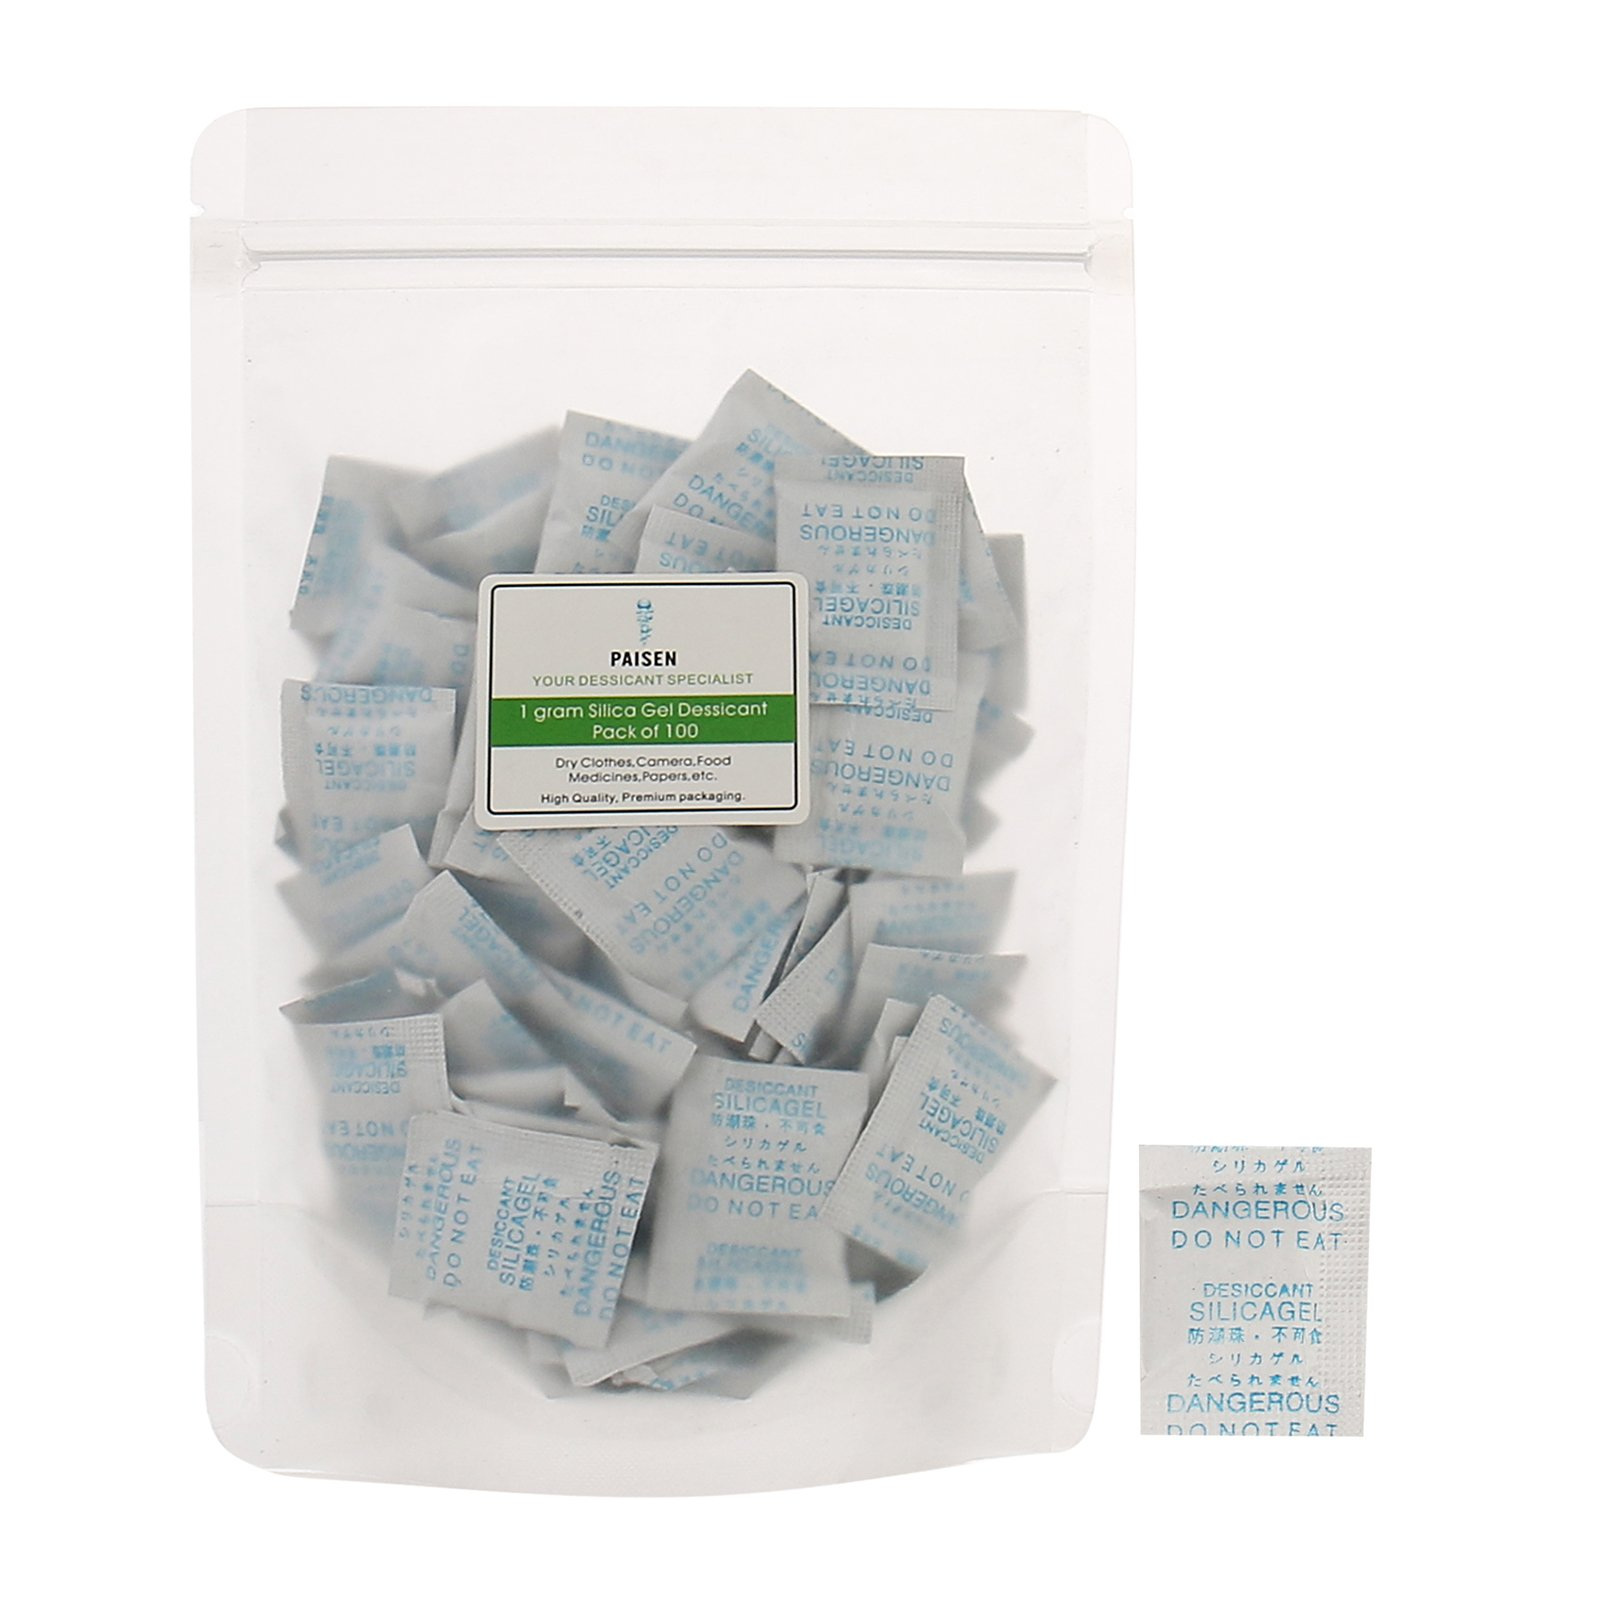 (100 packs) 1 Gram Silica Gel Dessicant Composite Paper Drying Desiccant Packets, High Efficient Dehumidifier Bags,Clear Moisture Gel Beads